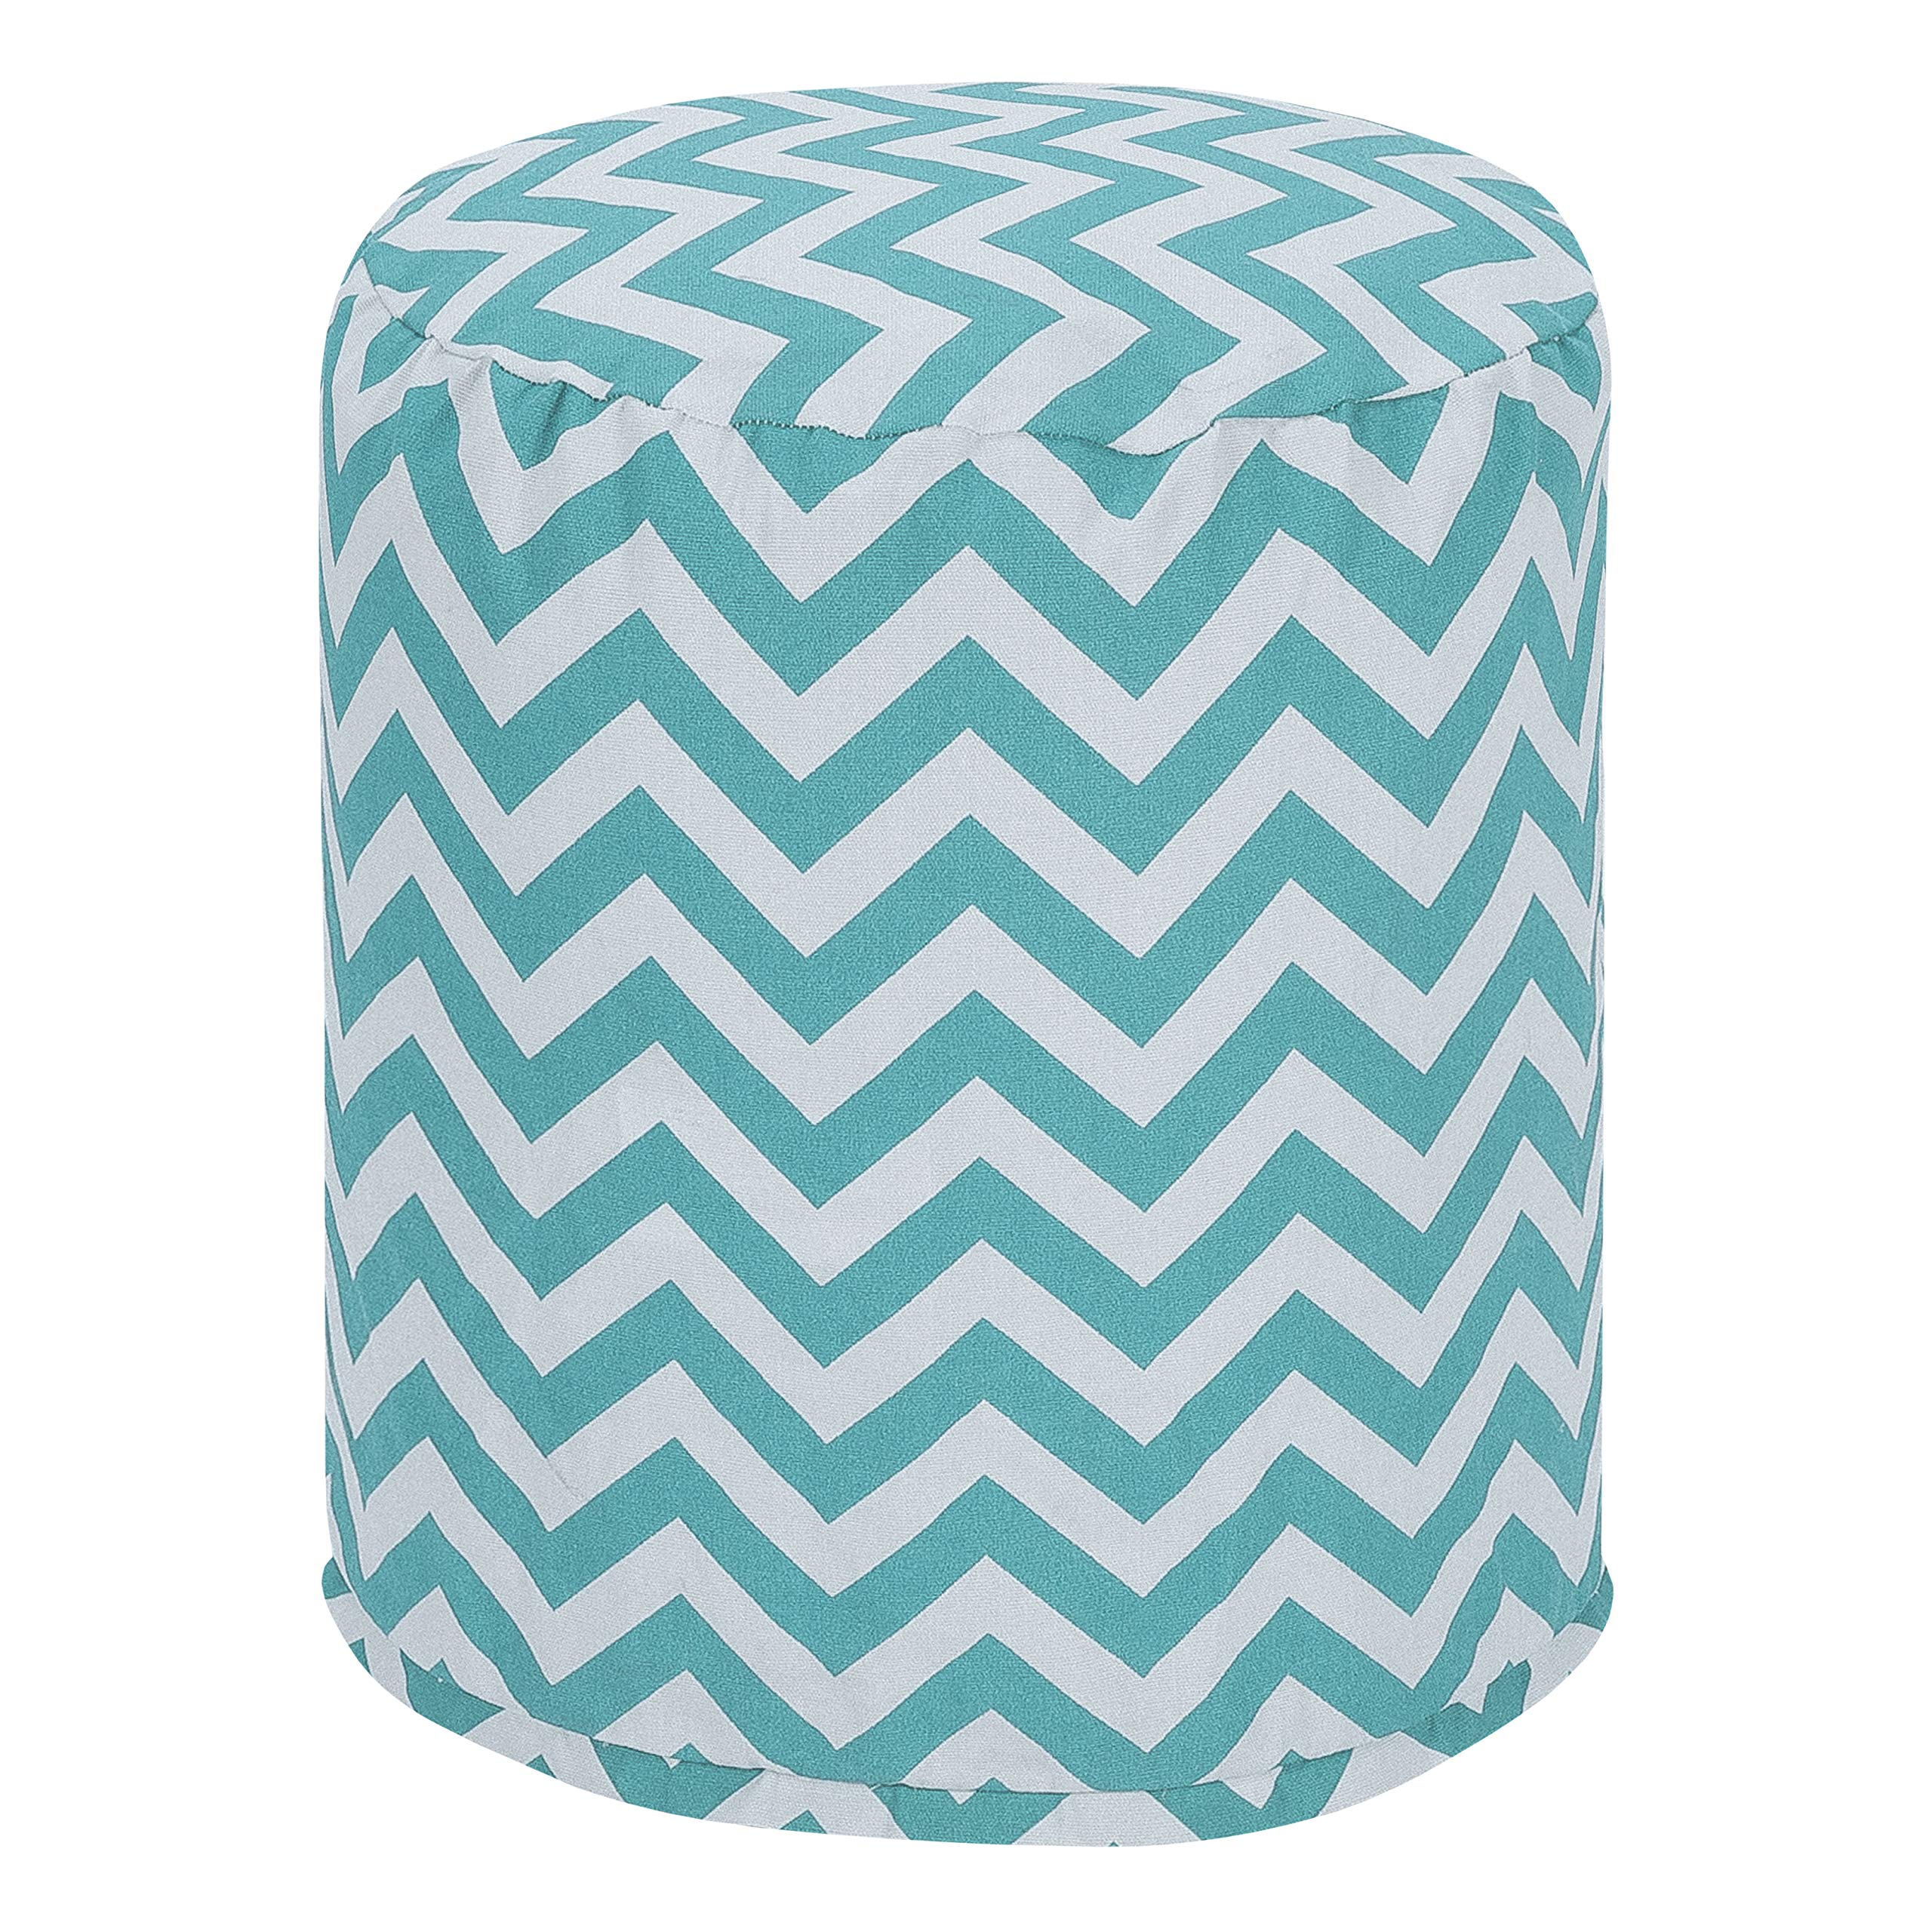 Majestic Home Goods Teal Chevron Indoor/Outdoor Bean Bag Ottoman Pouf 16'' L x 16'' W x 17'' H